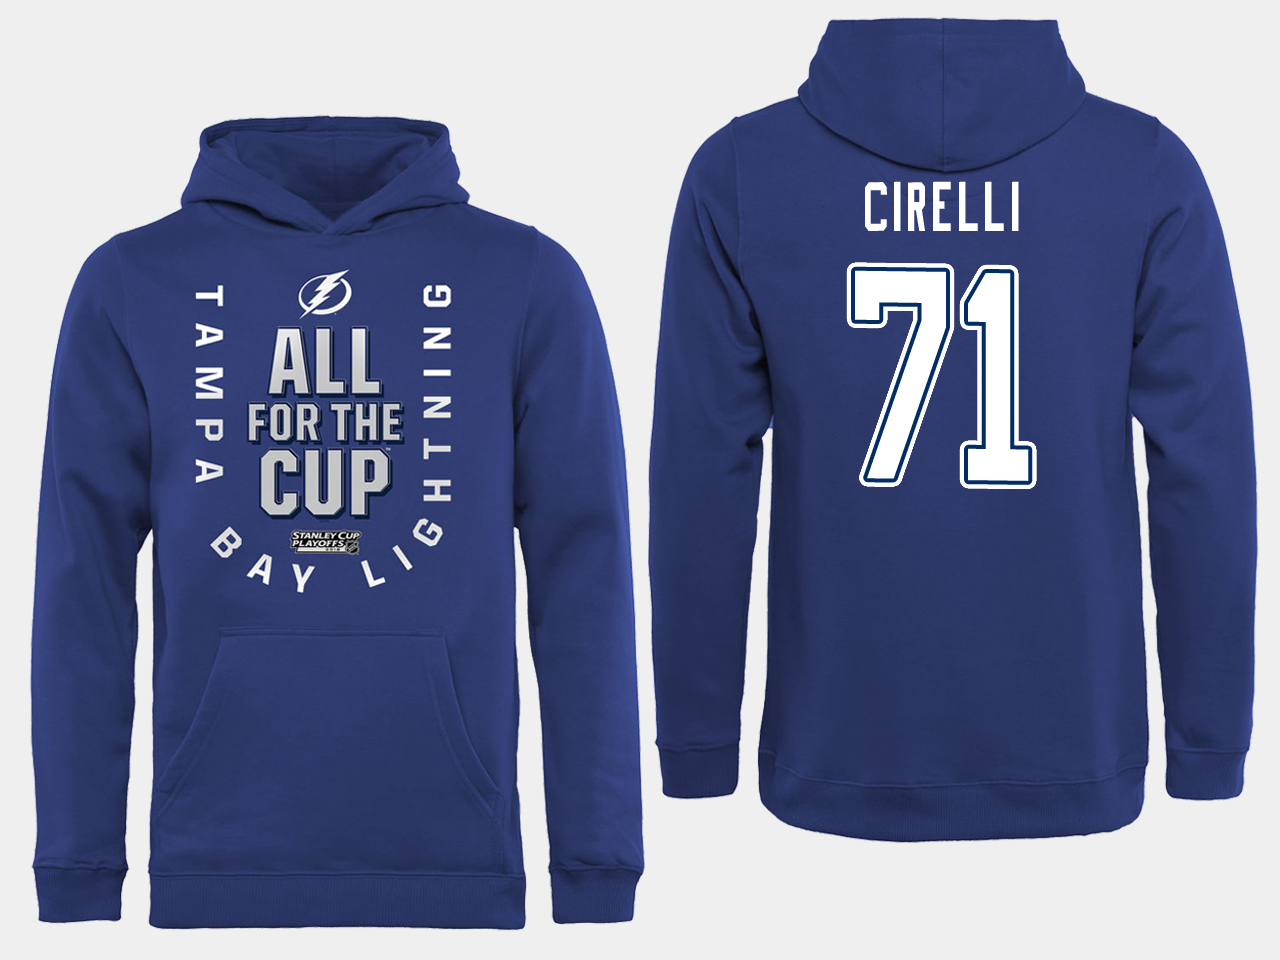 NHL Men adidas Tampa Bay Lightning 71 Cirelli blue All for the Cup Hoodie